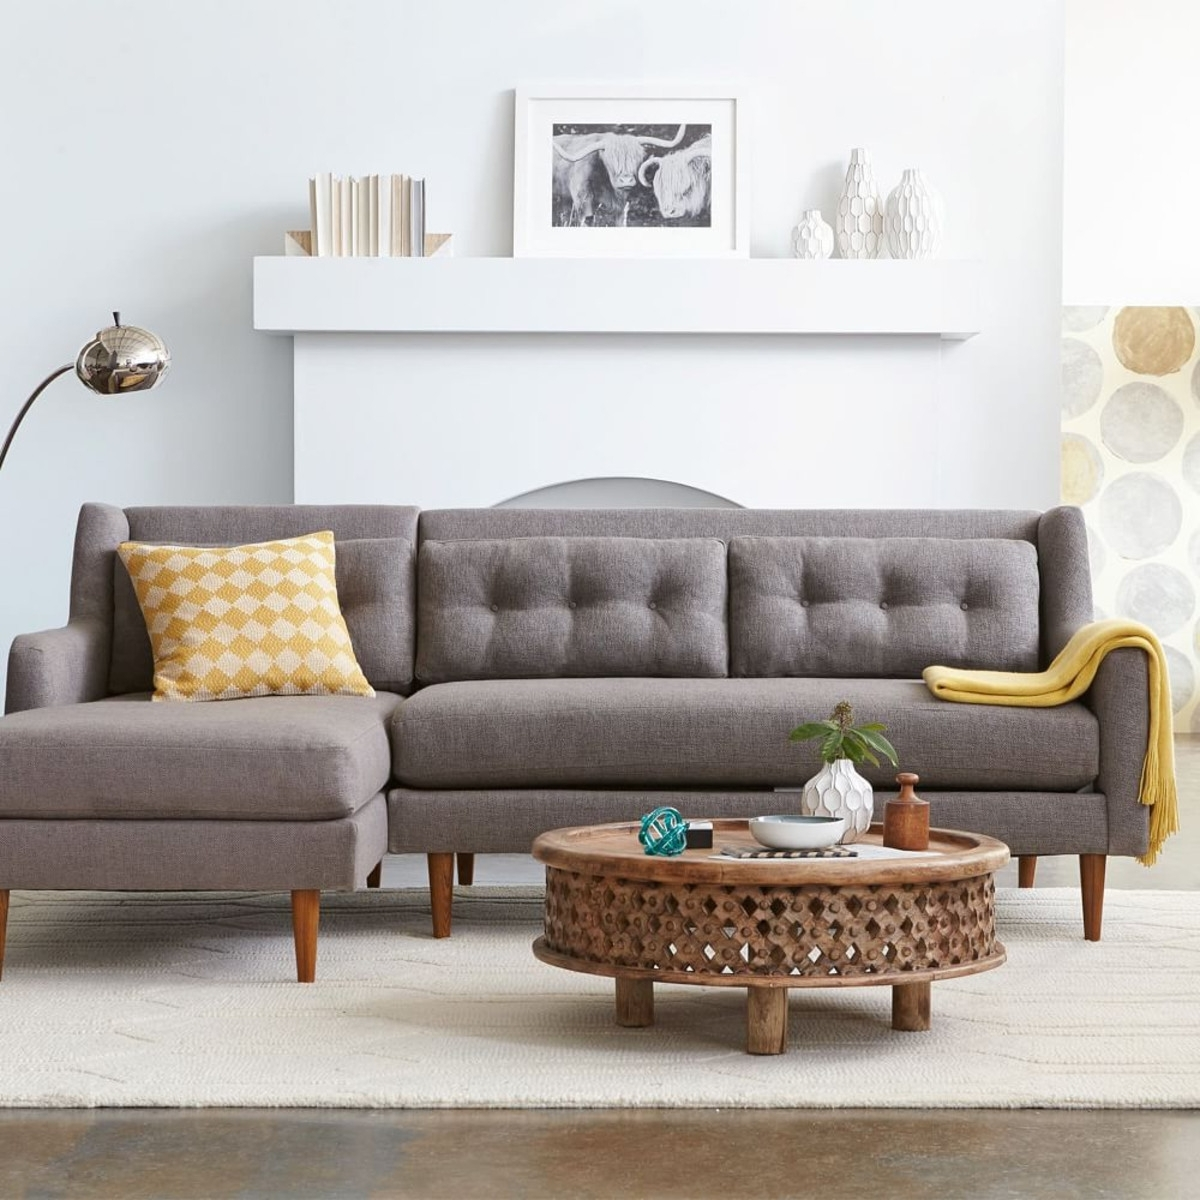 west elm dunham sofa reviews led set 2019 popular sectional sofas well known in crosby view 11 of